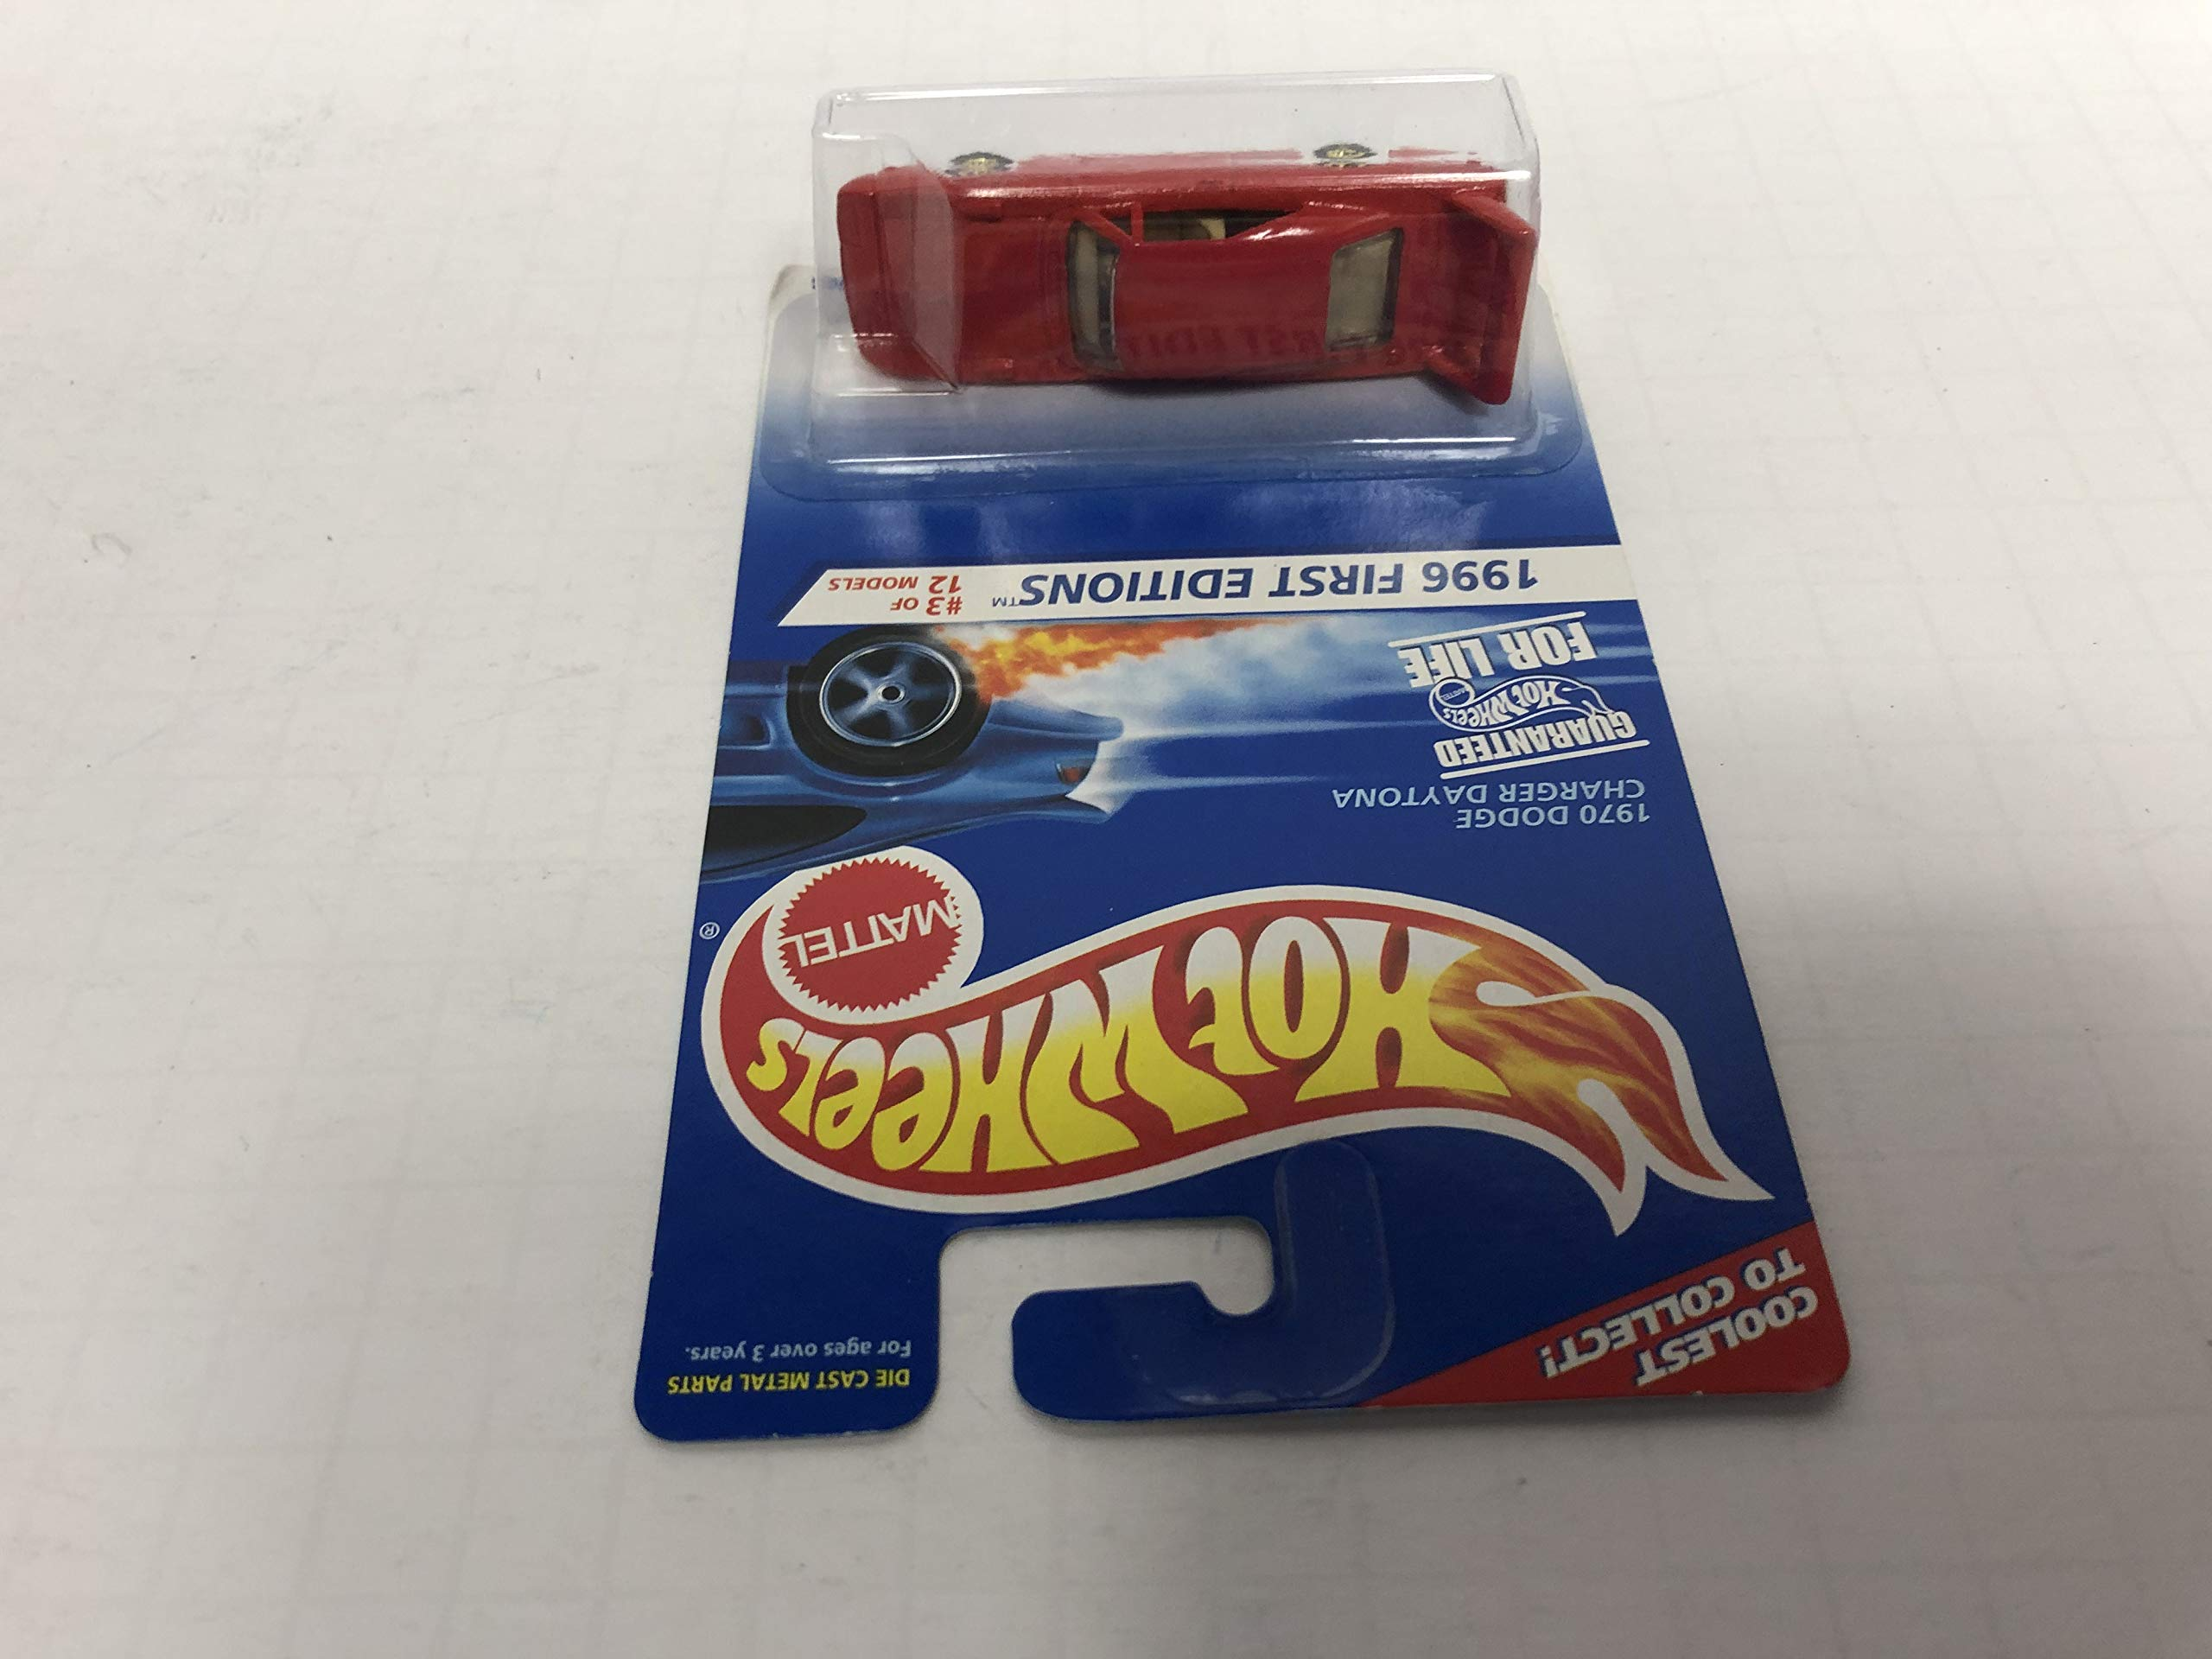 1970 DODGE CHARGER DAYTONA (Gold Rims) 1996 First Editions Hot Wheels No. 3 diecast 1/64 scale car